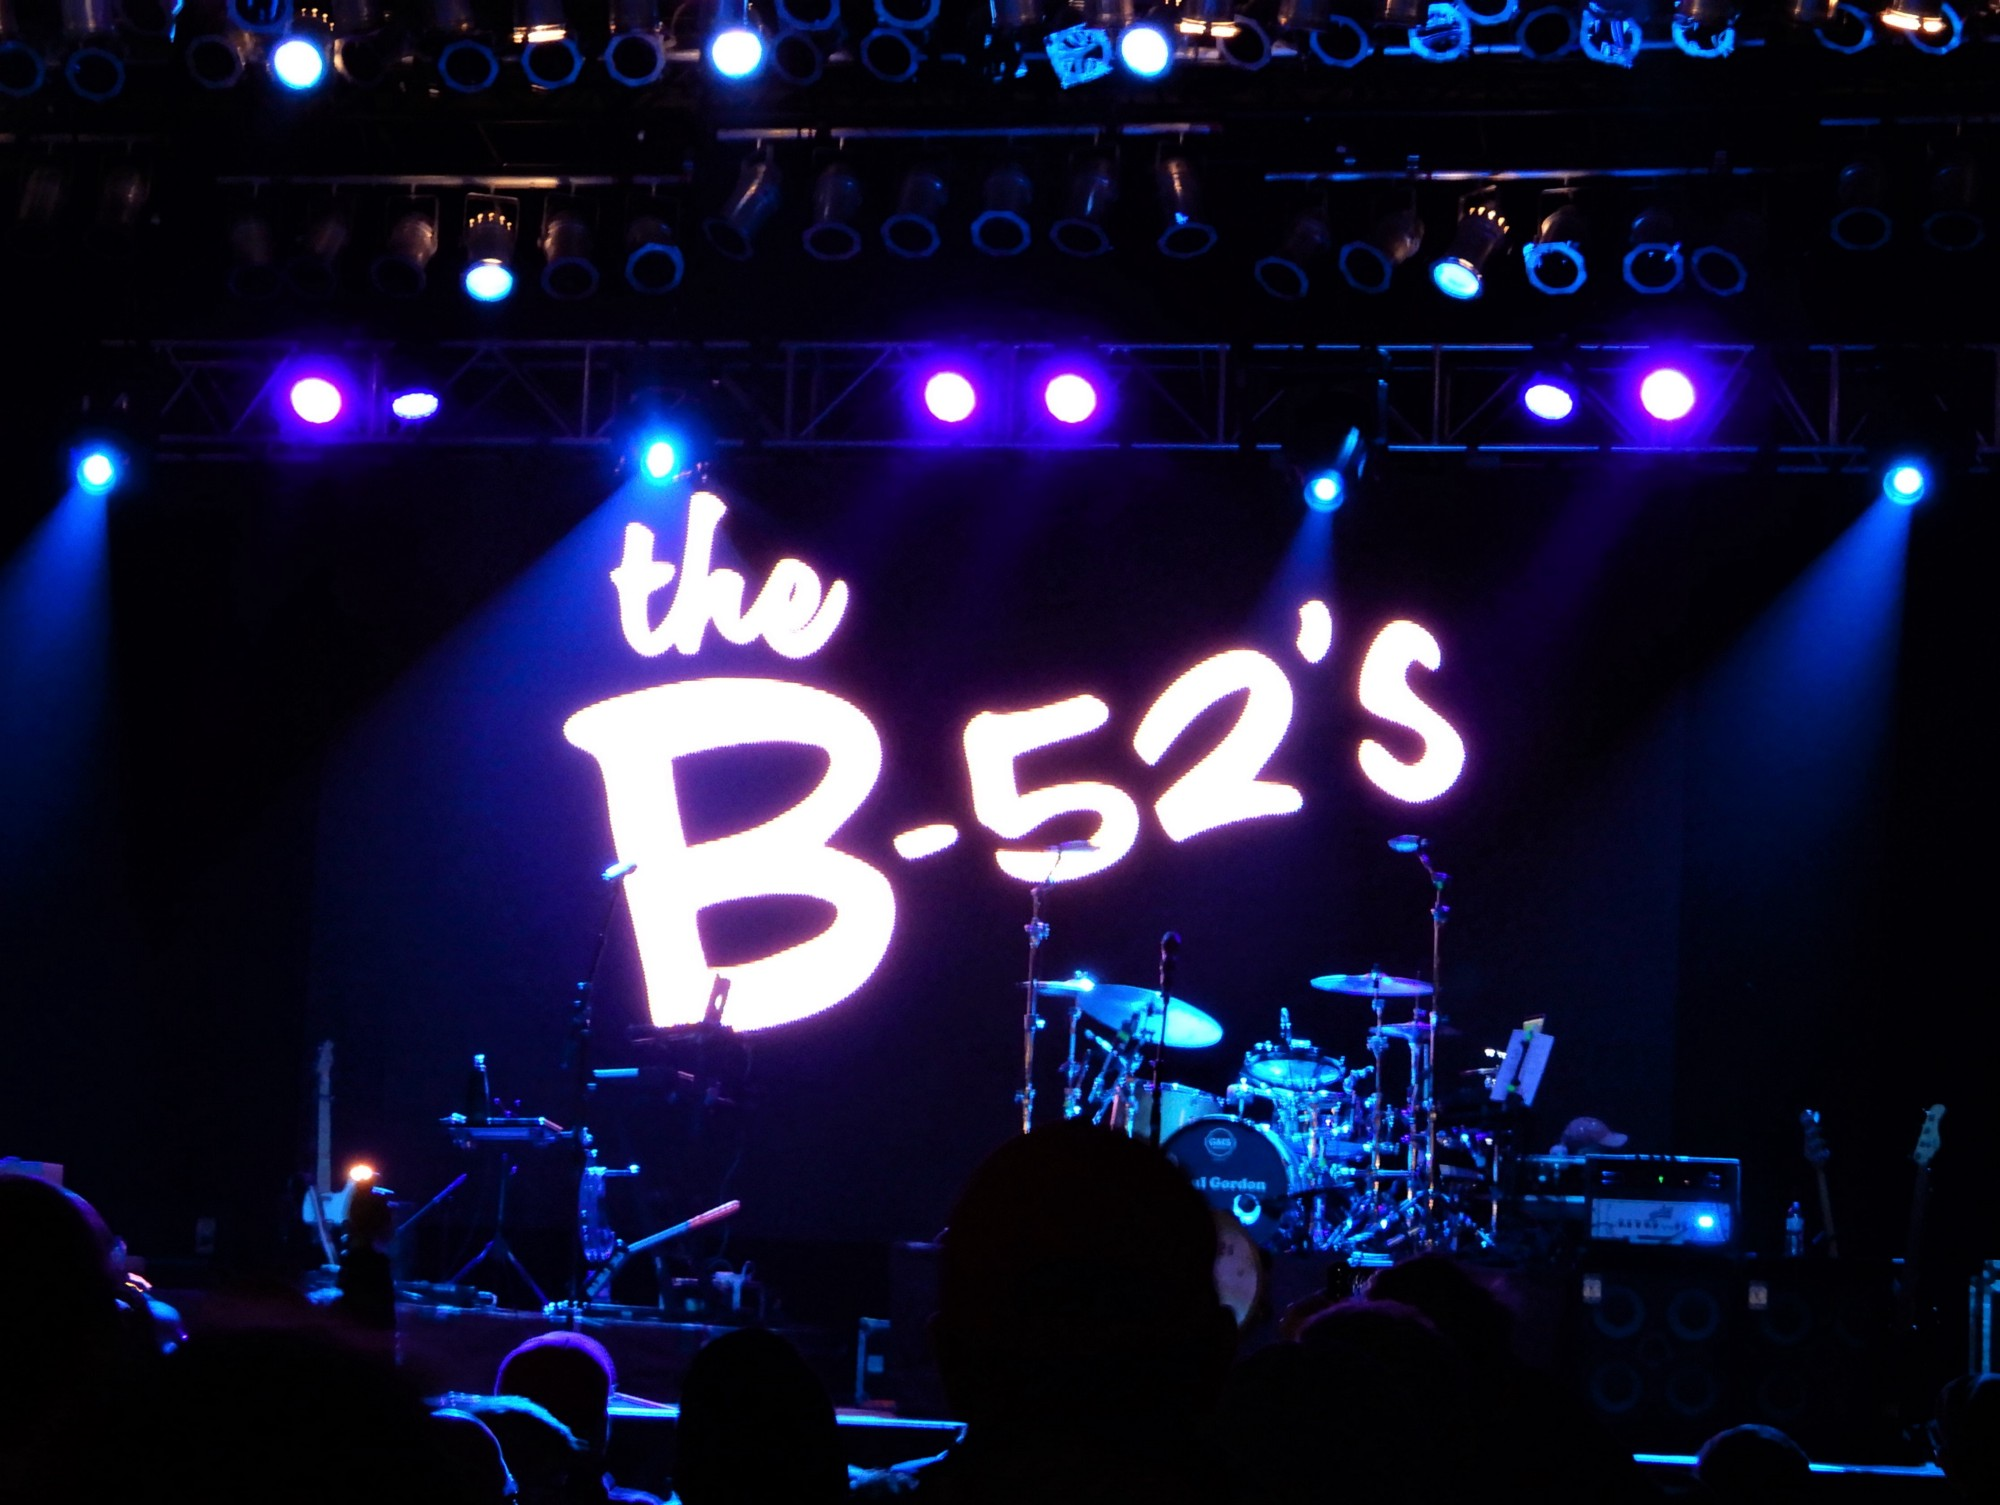 Stage with lit with spotlights and projection of B-52's logo behind drum kit.